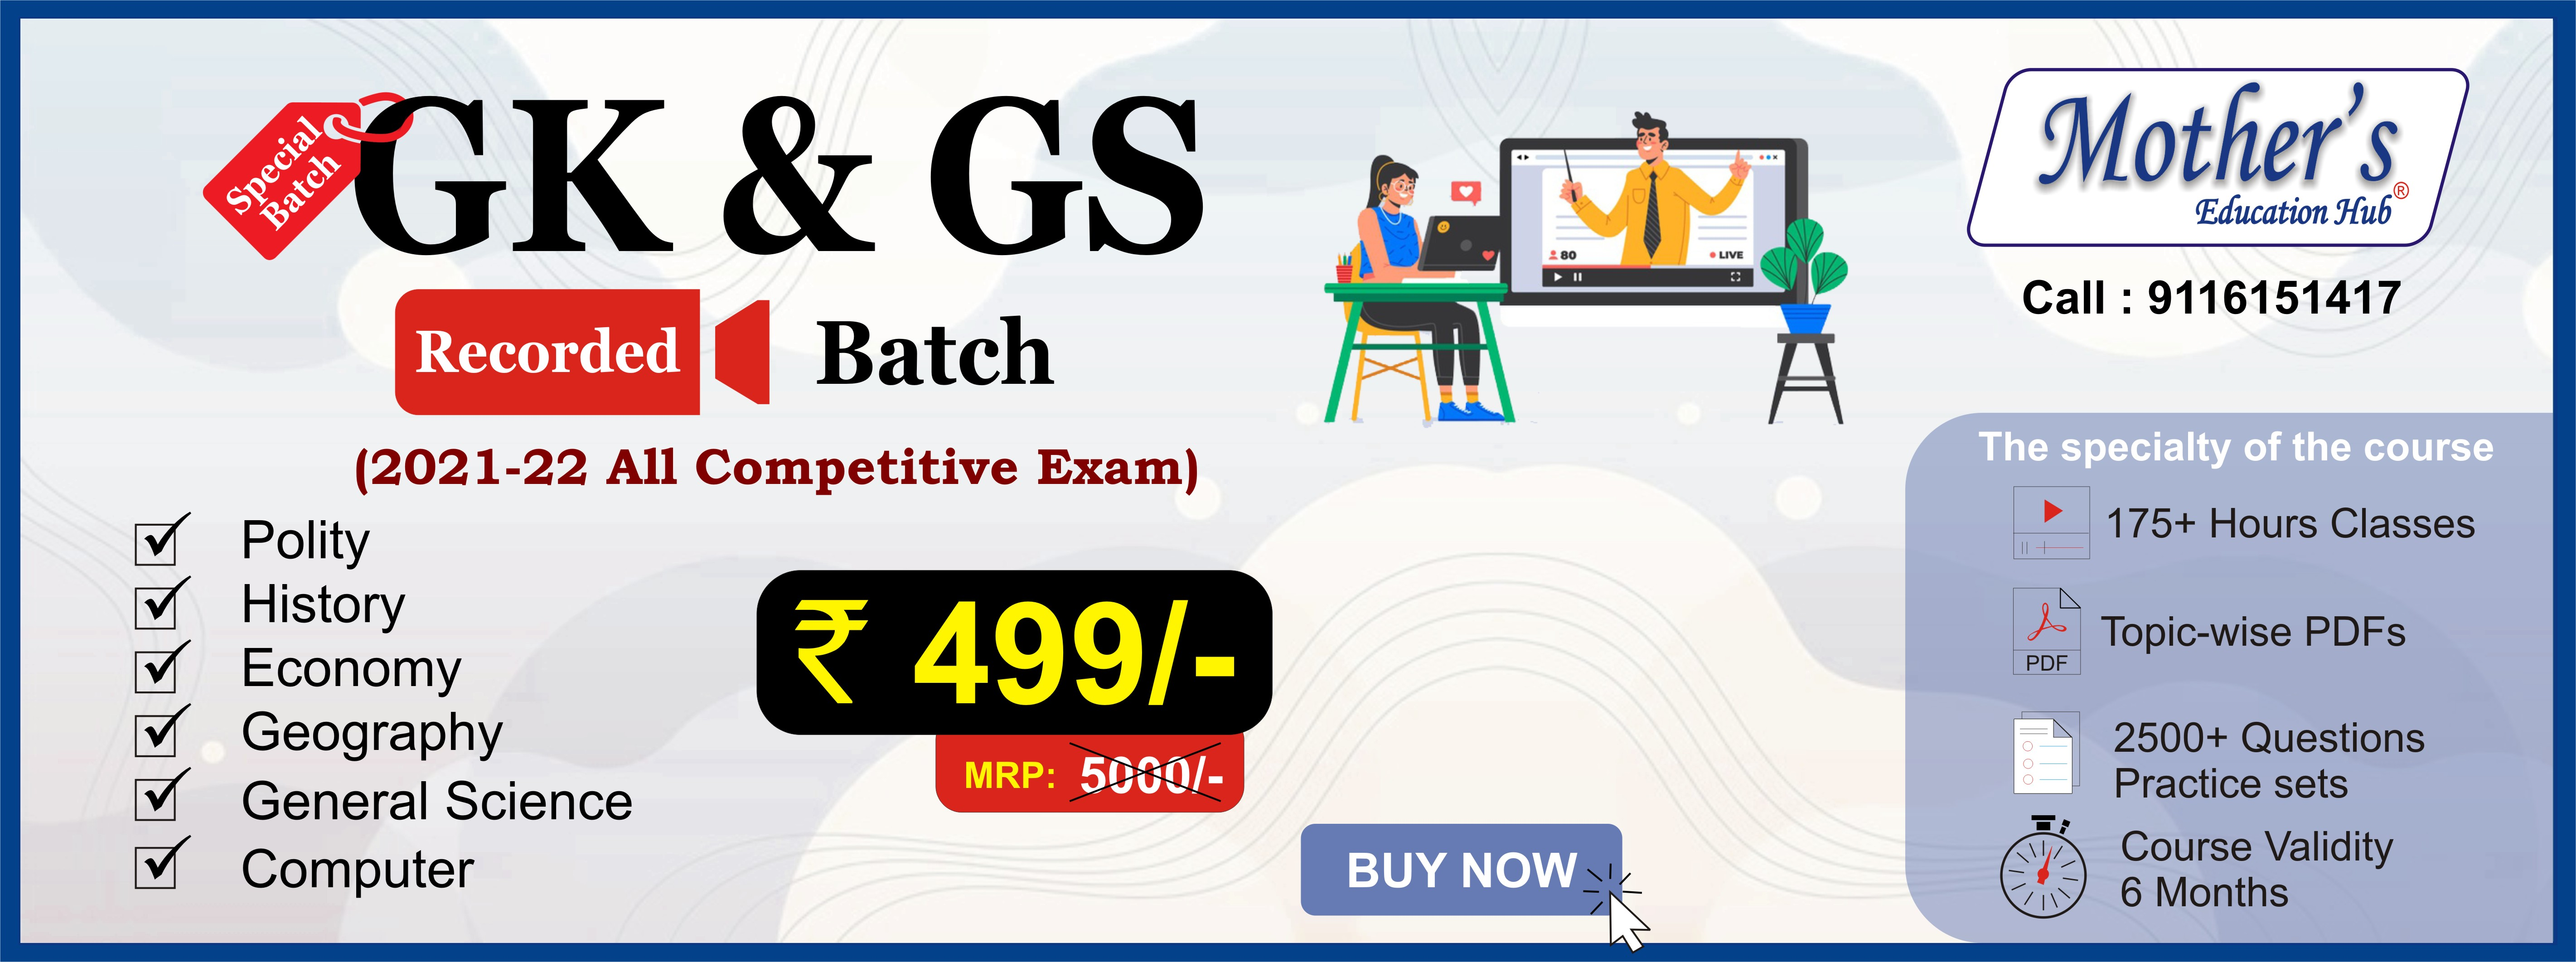 GK+GS(All Subjects) Special VOD(Recorded) Batch 2021-22 for All Exams